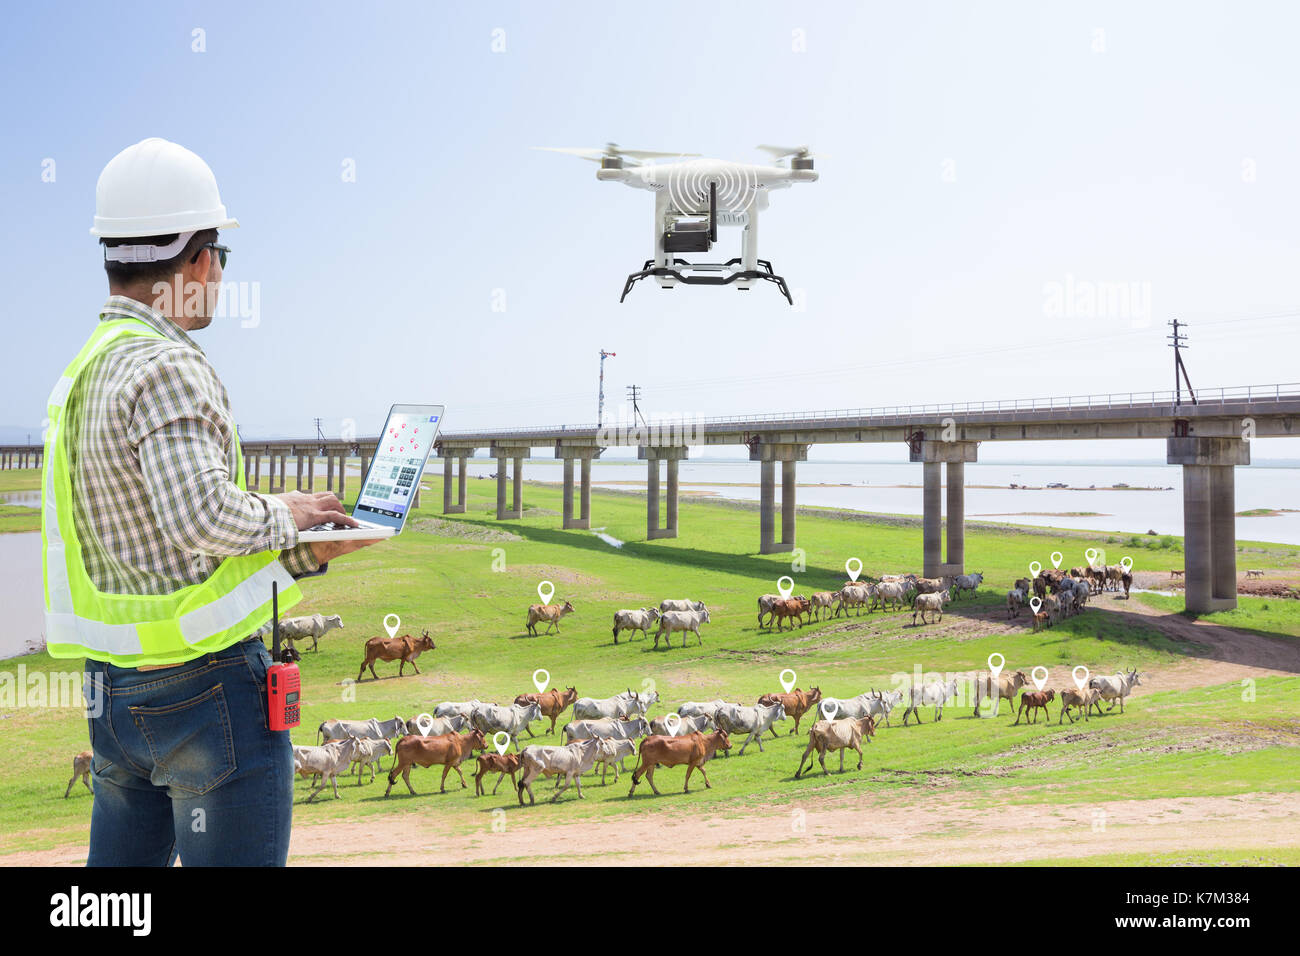 drone gps tracking with Stock Photo Technician Farmer Use  Puter Control Drone Tracking The Cow In Smart 159637524 on 385254 together with 401216 likewise Cd649de24b in addition Gps Tracking For Hazardous Waste Transport additionally Block Diagram Gps Agriculture Wiring Diagrams.